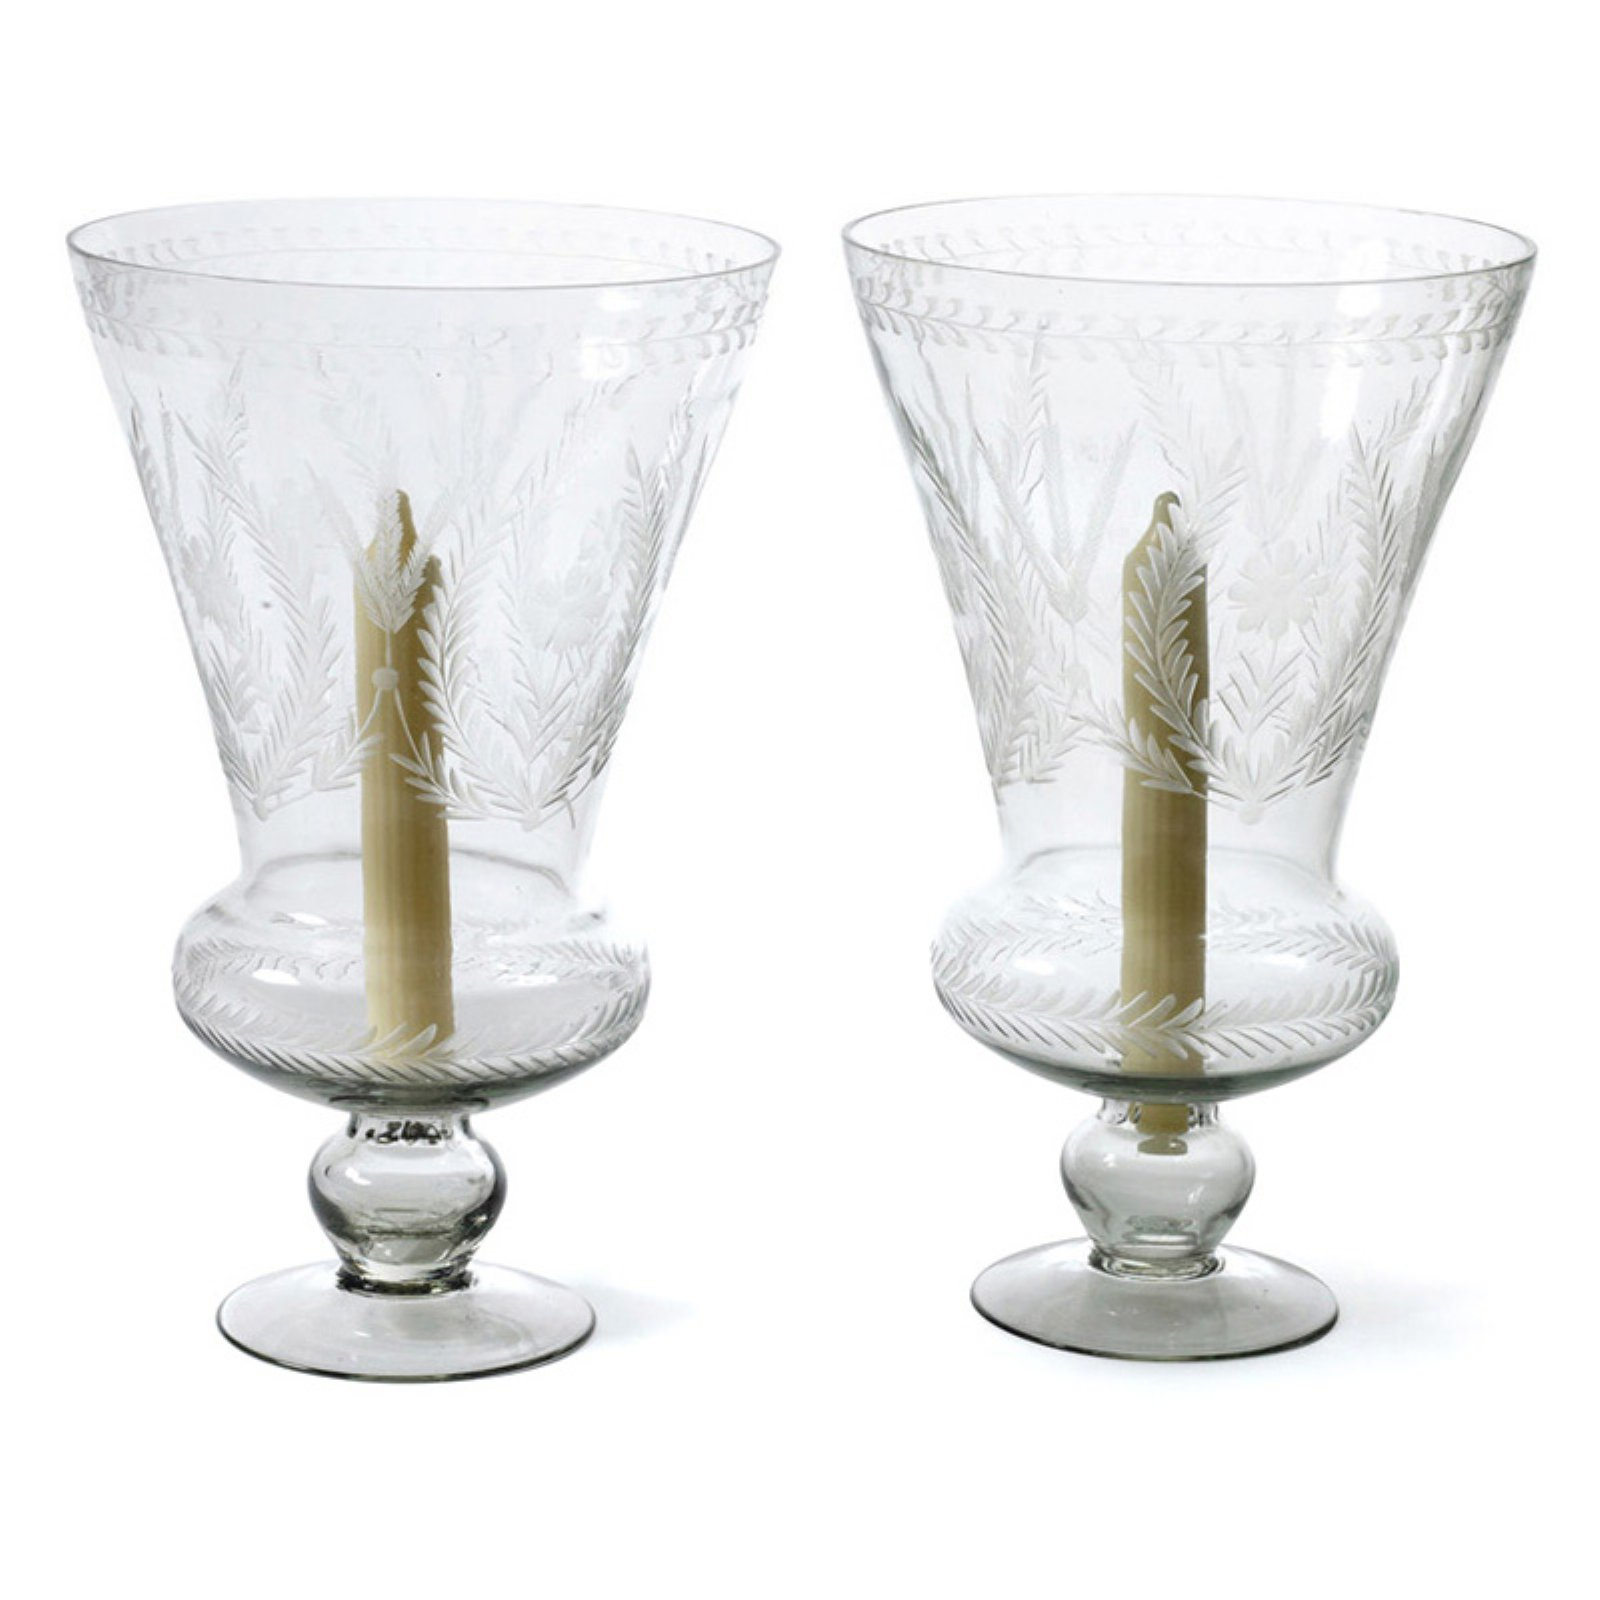 Hip Vintage Maison Hurricane Candle Holder - Set of 2